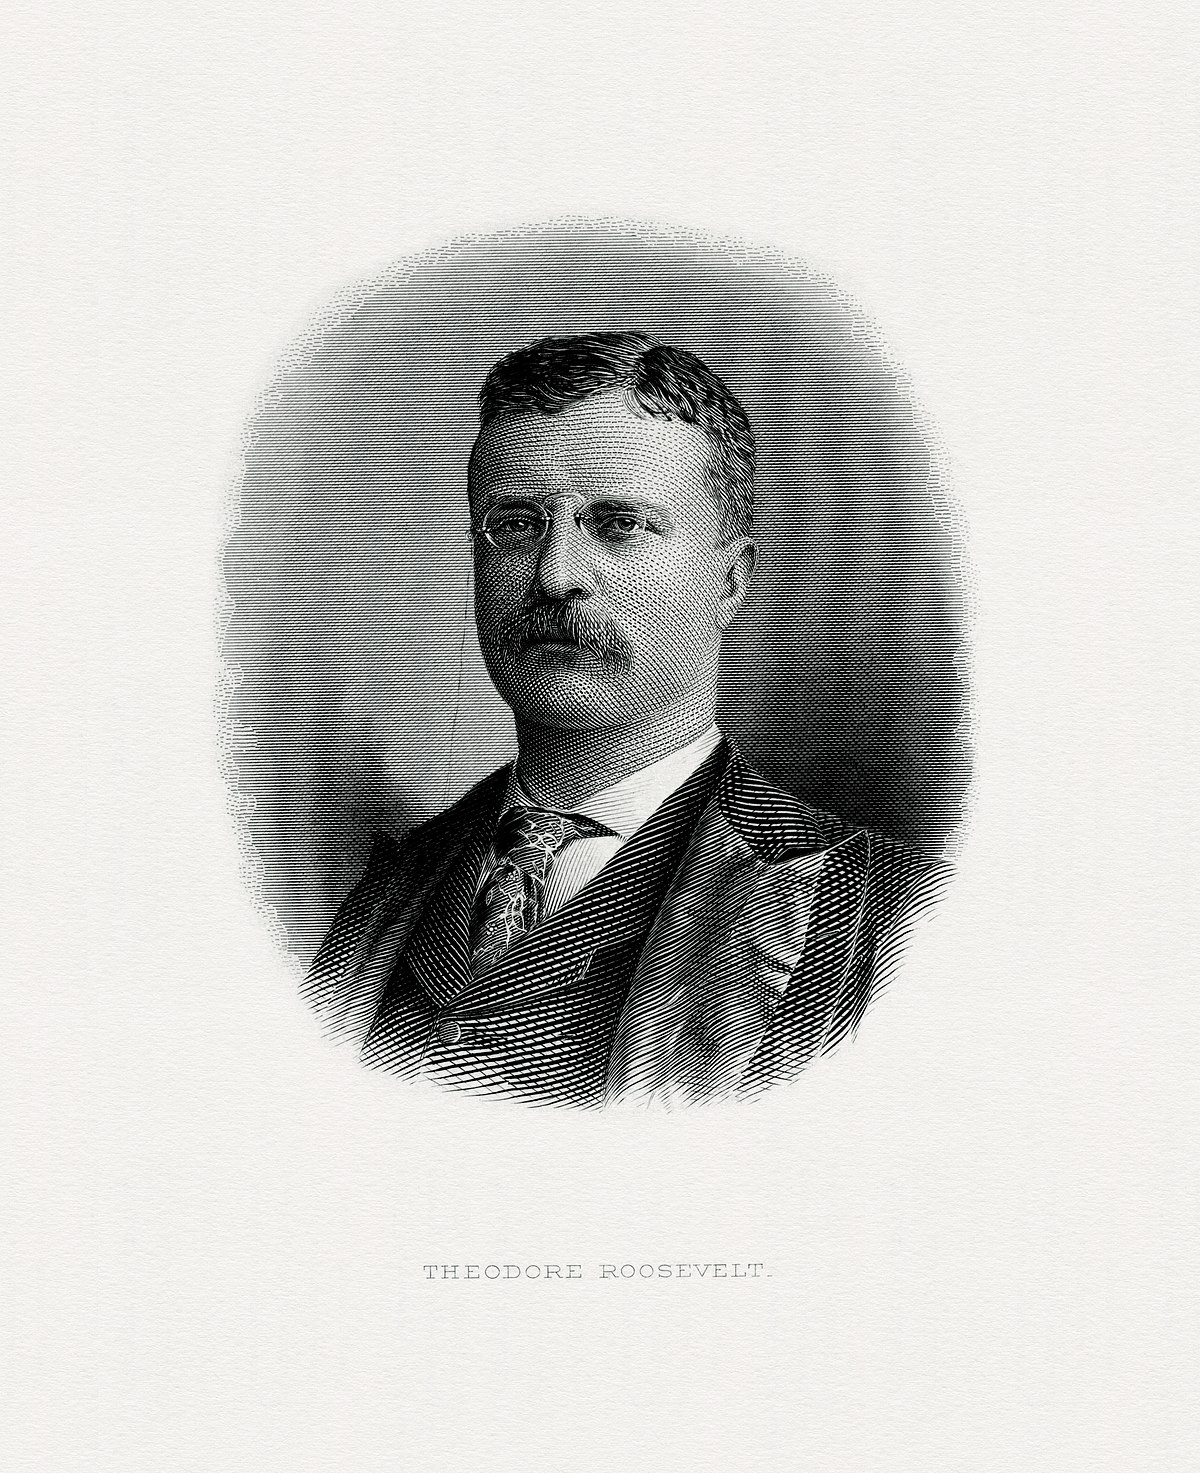 theodore roosevelt digital library